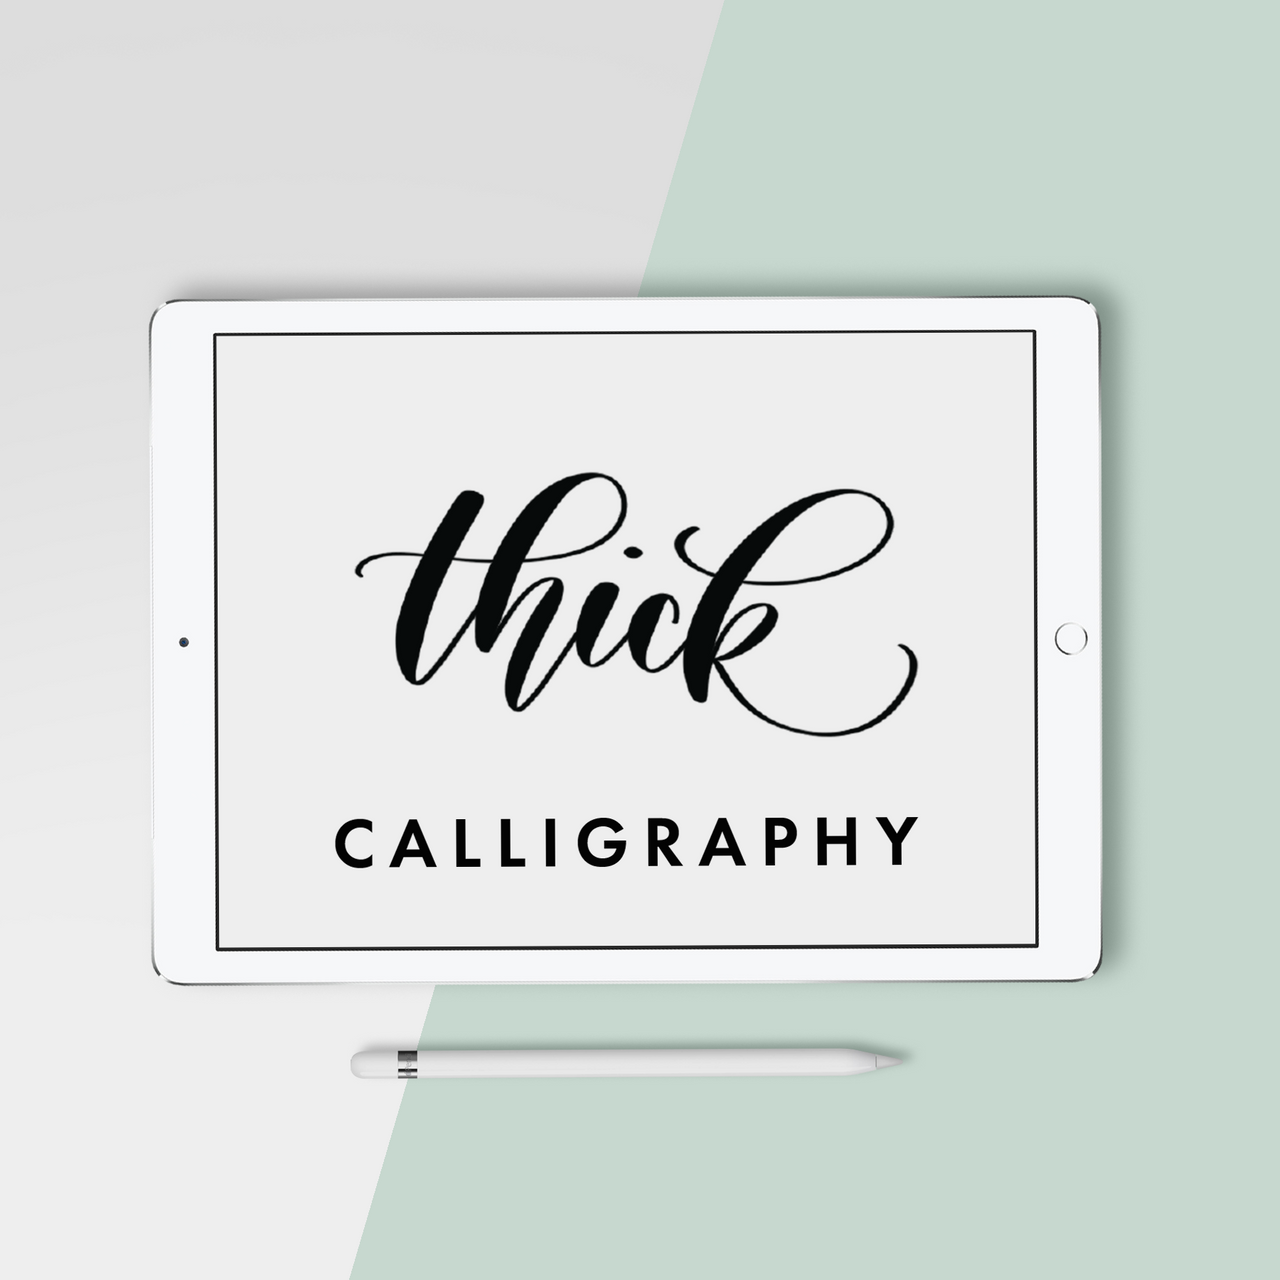 Thick Calligraphy Procreate Brush - Hewitt Avenue